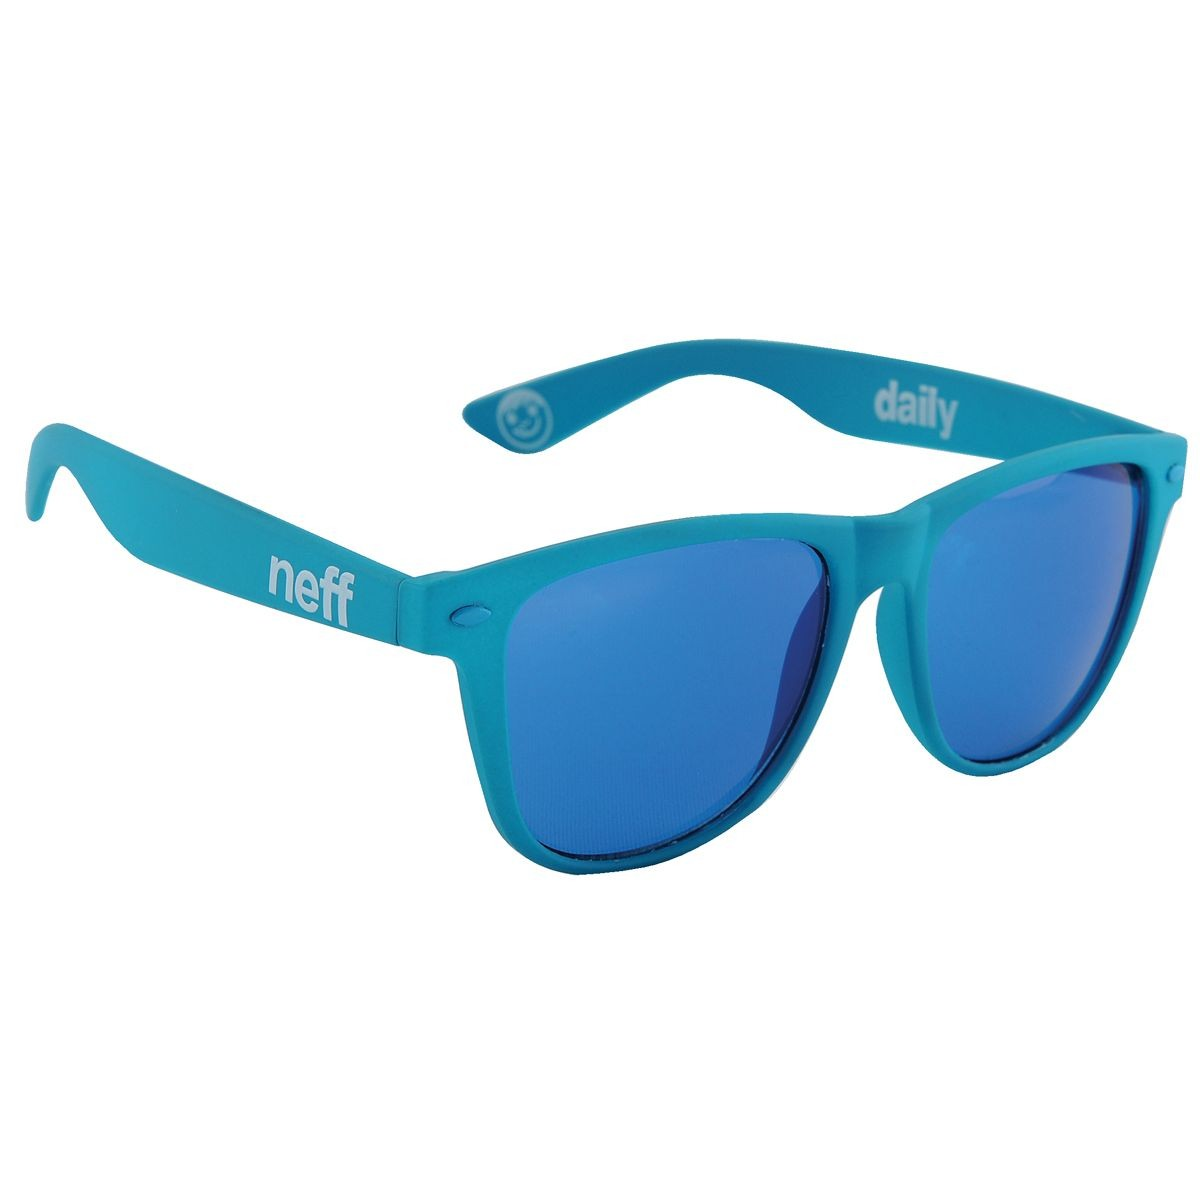 Neff Daily Sunglasses - Blue Soft Touch